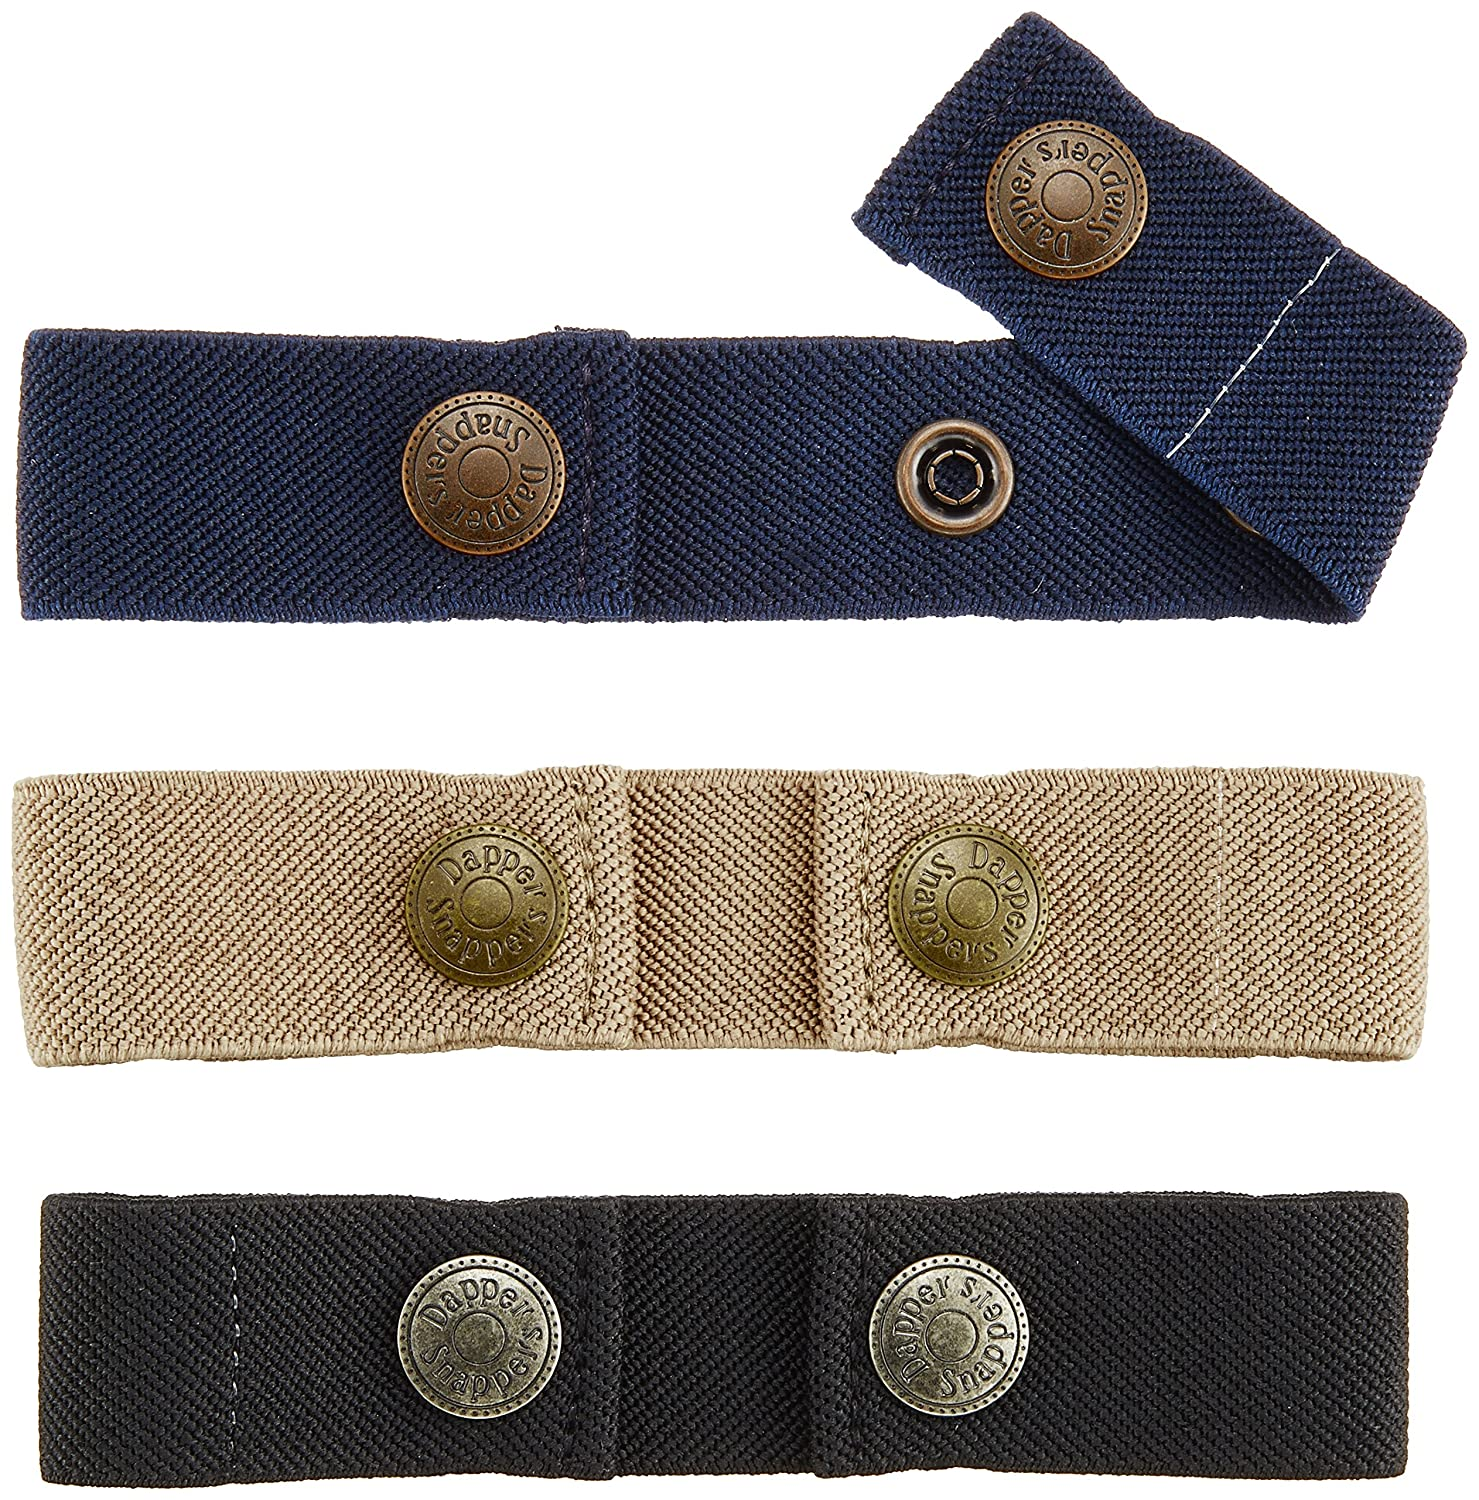 Dapper Snapper Baby & Toddler Adjustable Belt- Boy's Colors: Black, Tan, and Navy Ontel Products Corporation 3PK-NVBGBK